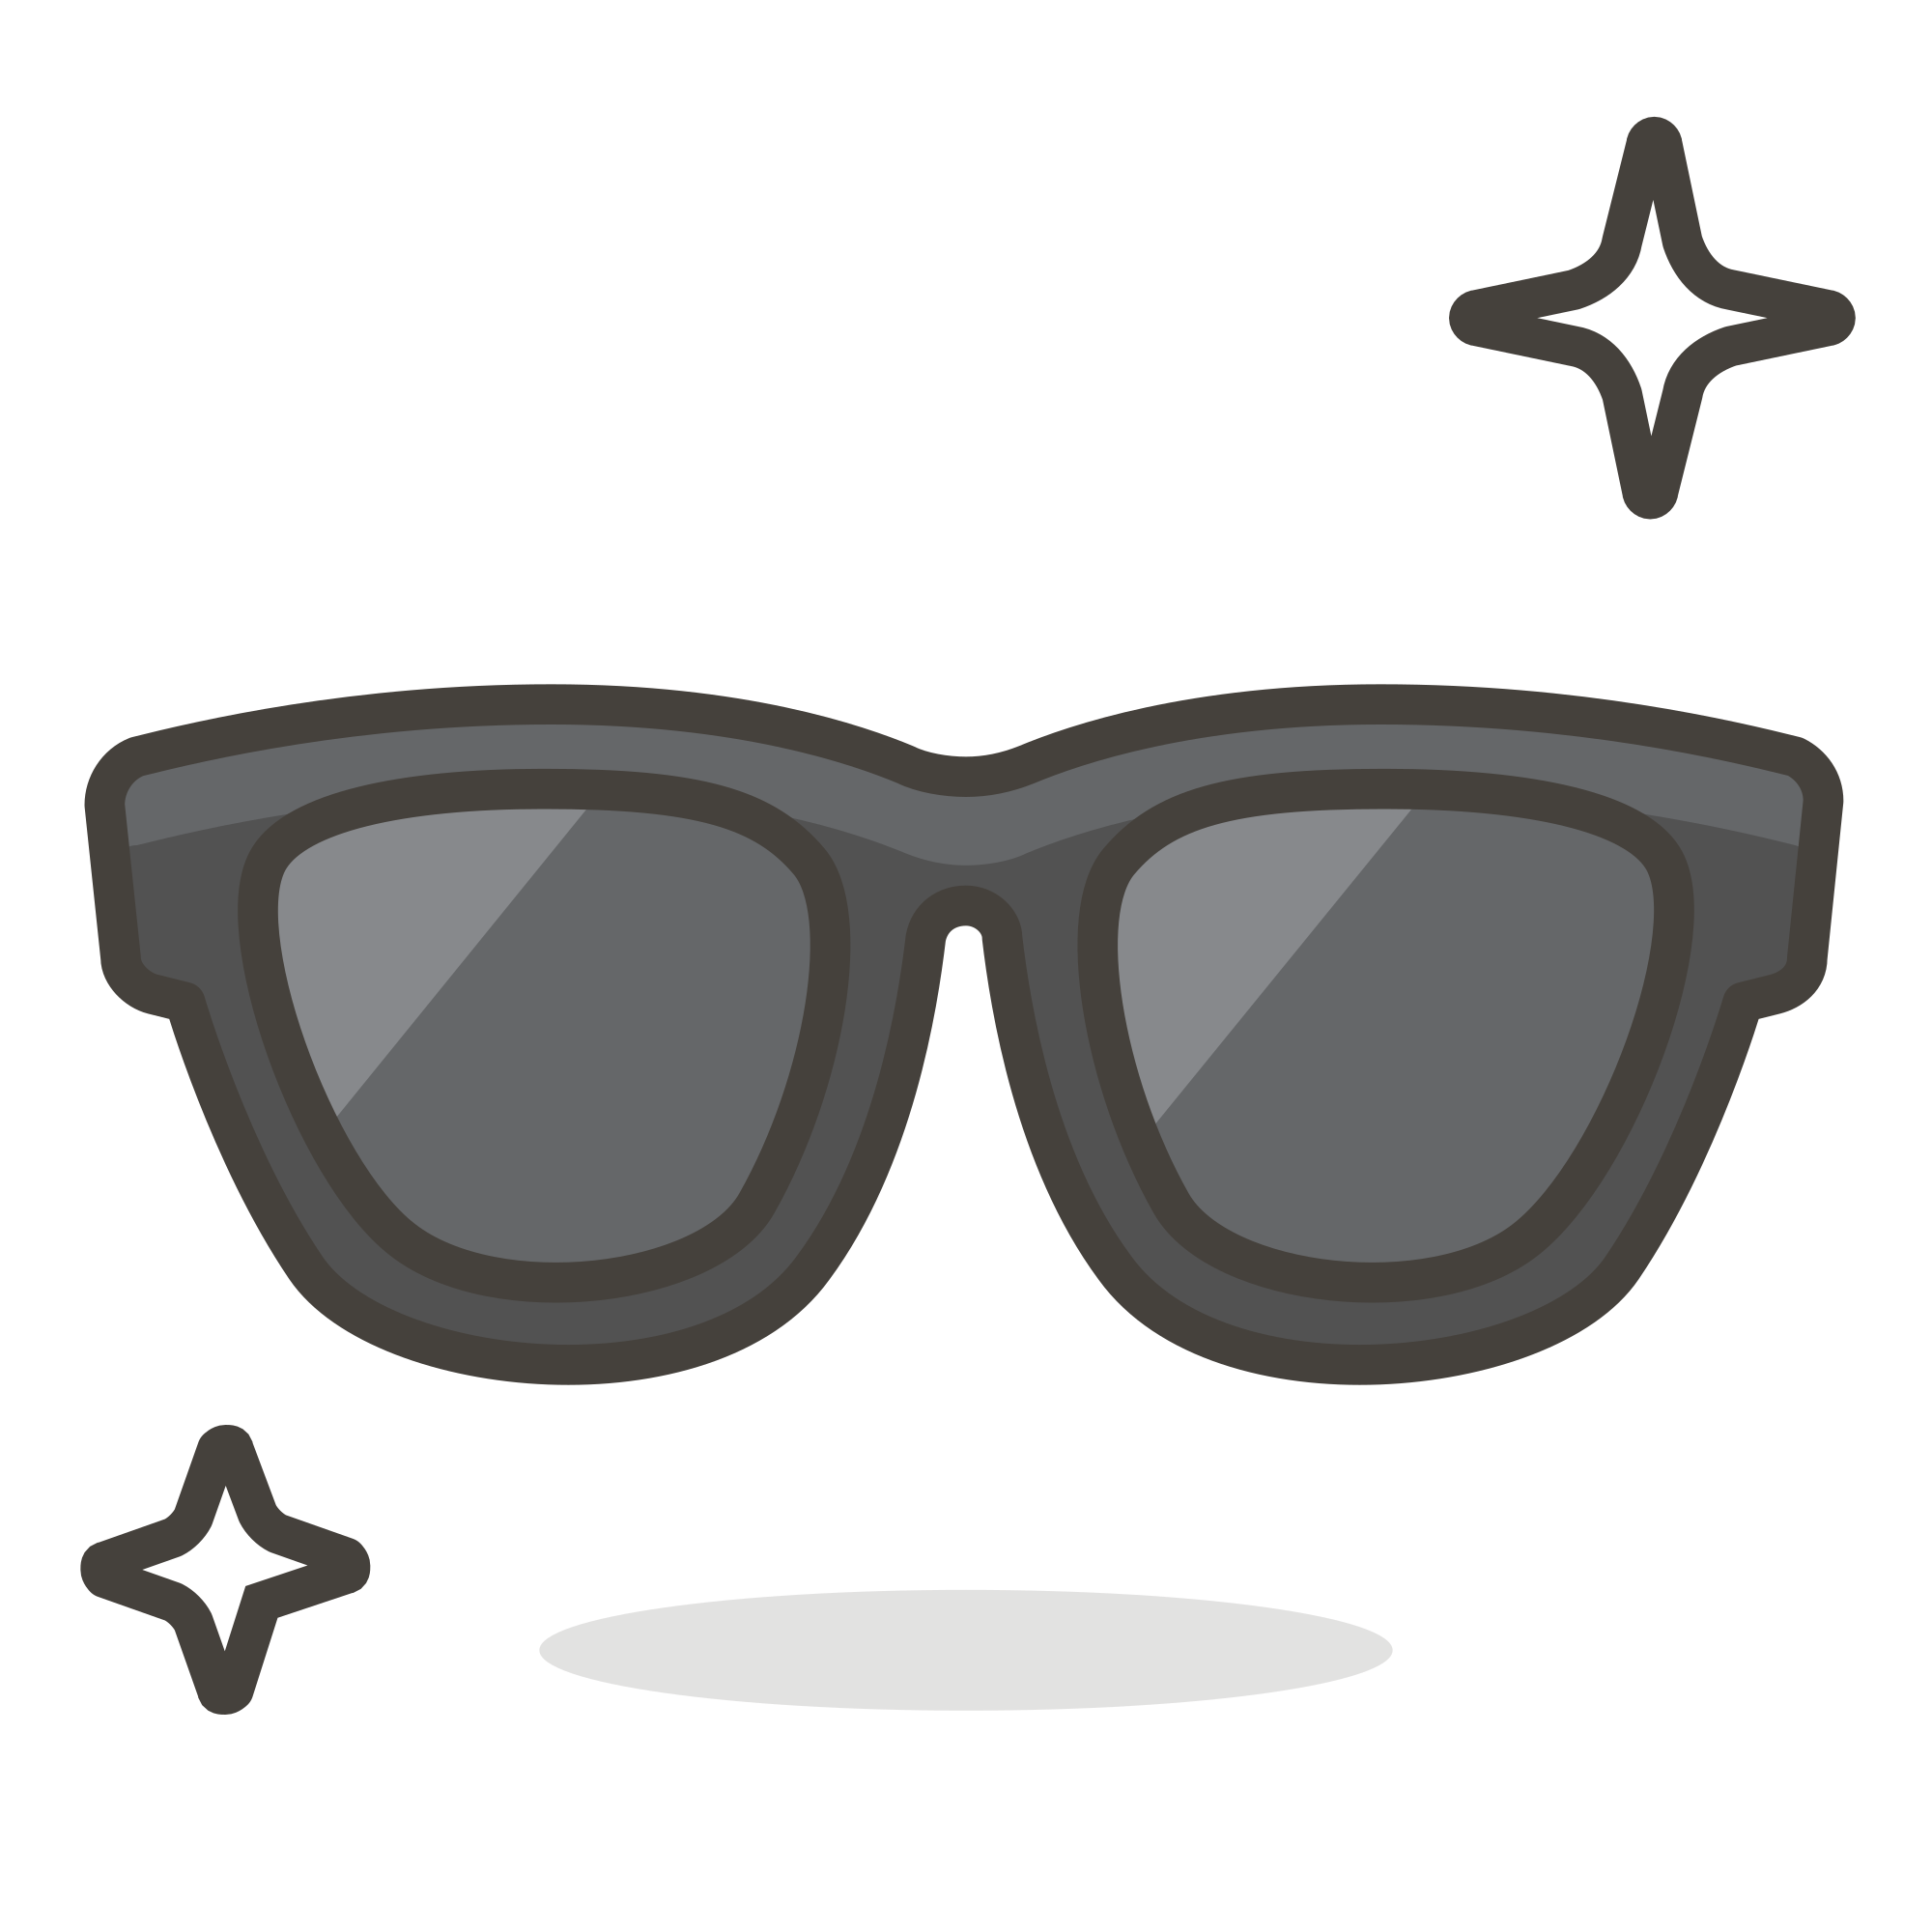 And svg sunglasses. File wikimedia commons open